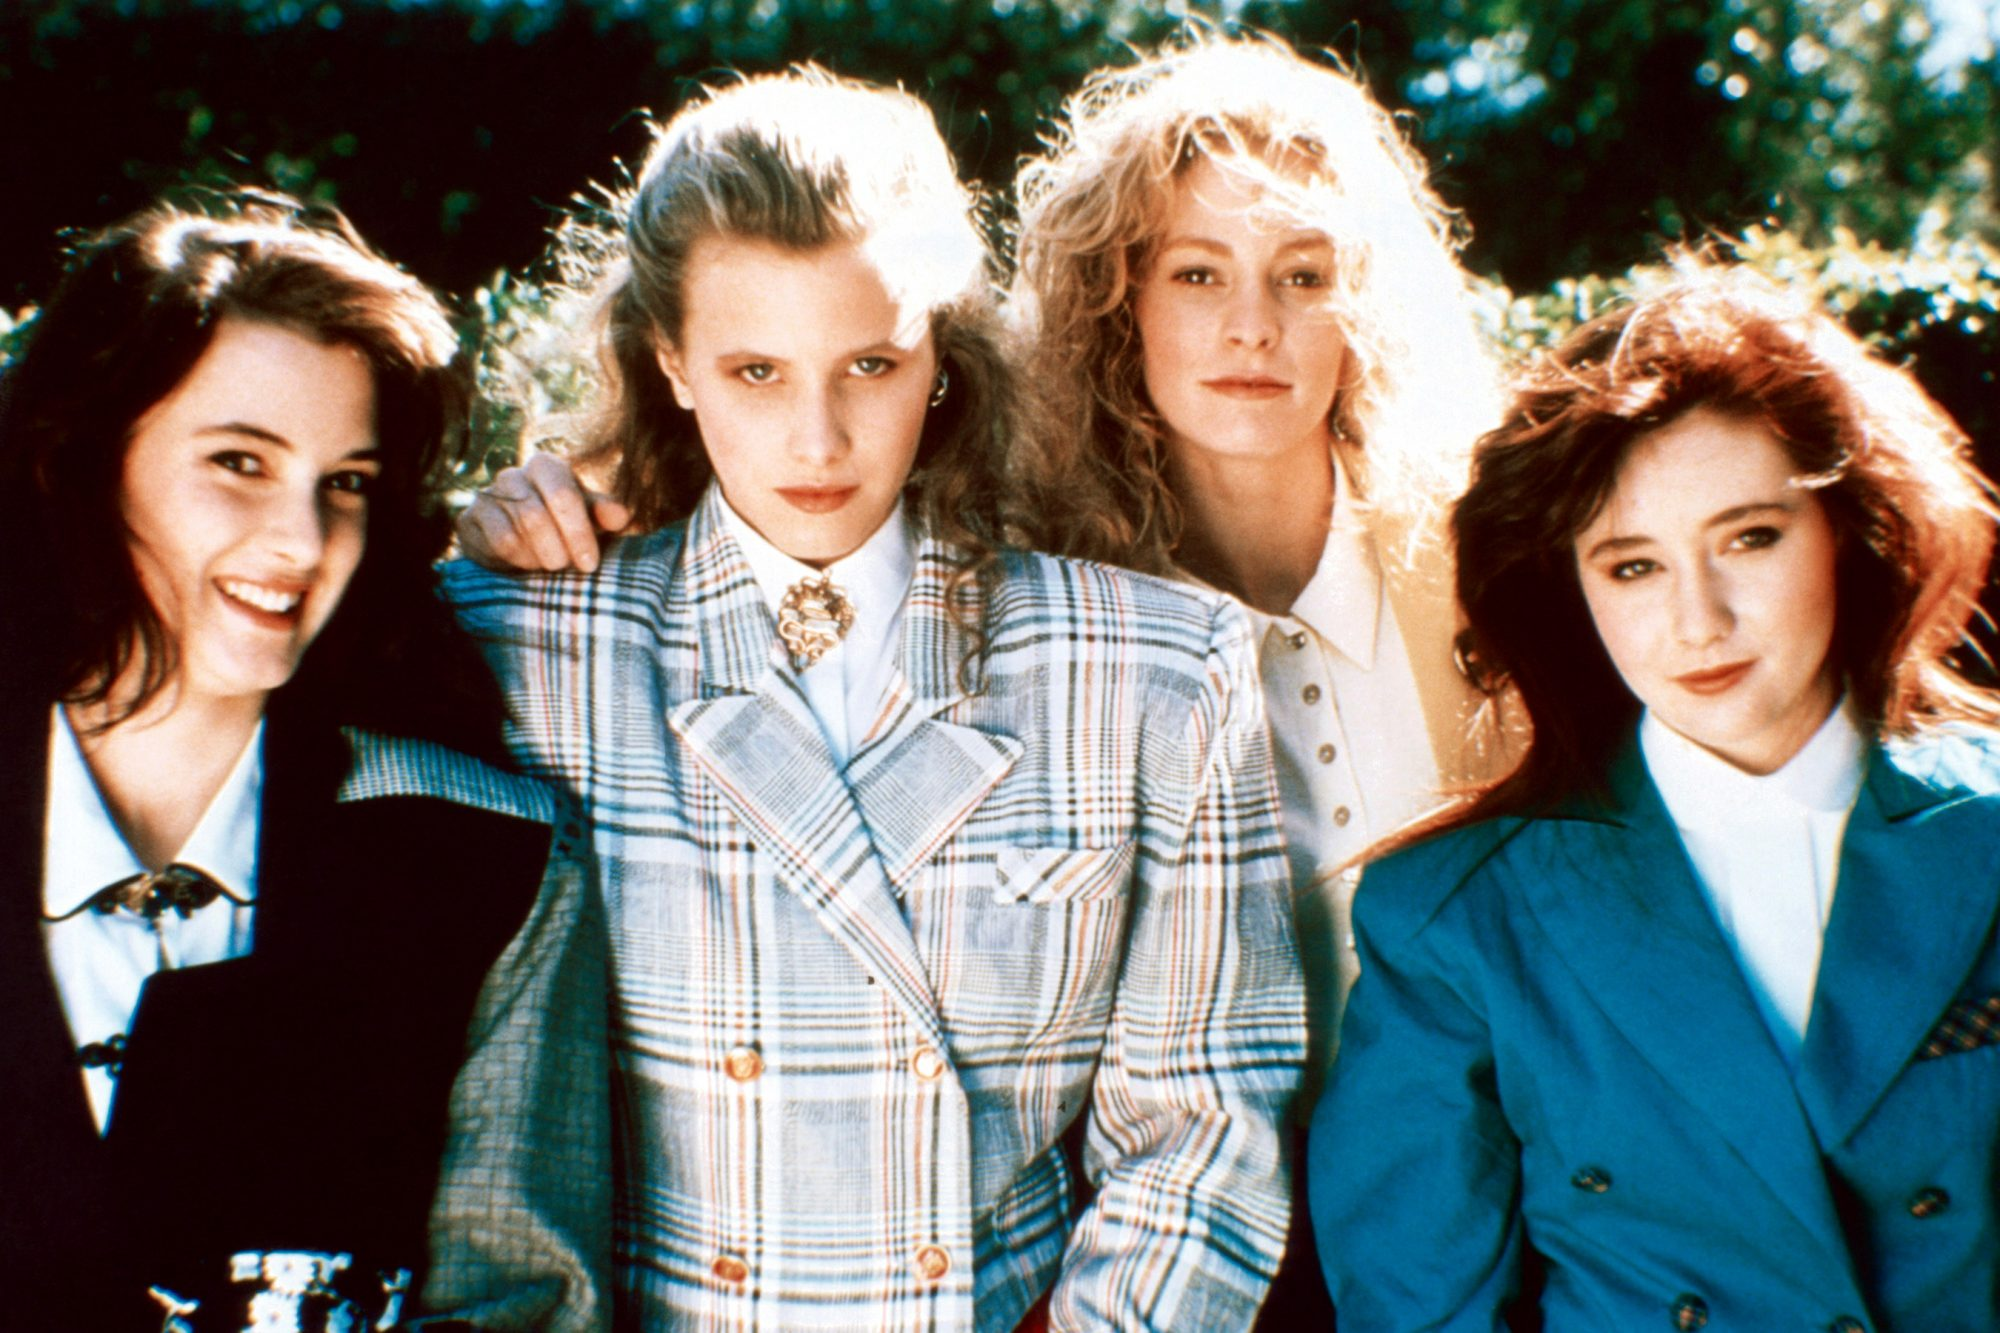 HEATHERS, from left: Winona Ryder, Kim Walker, Lisanne Falk, Shannon Doherty, 1988, © New World/cour